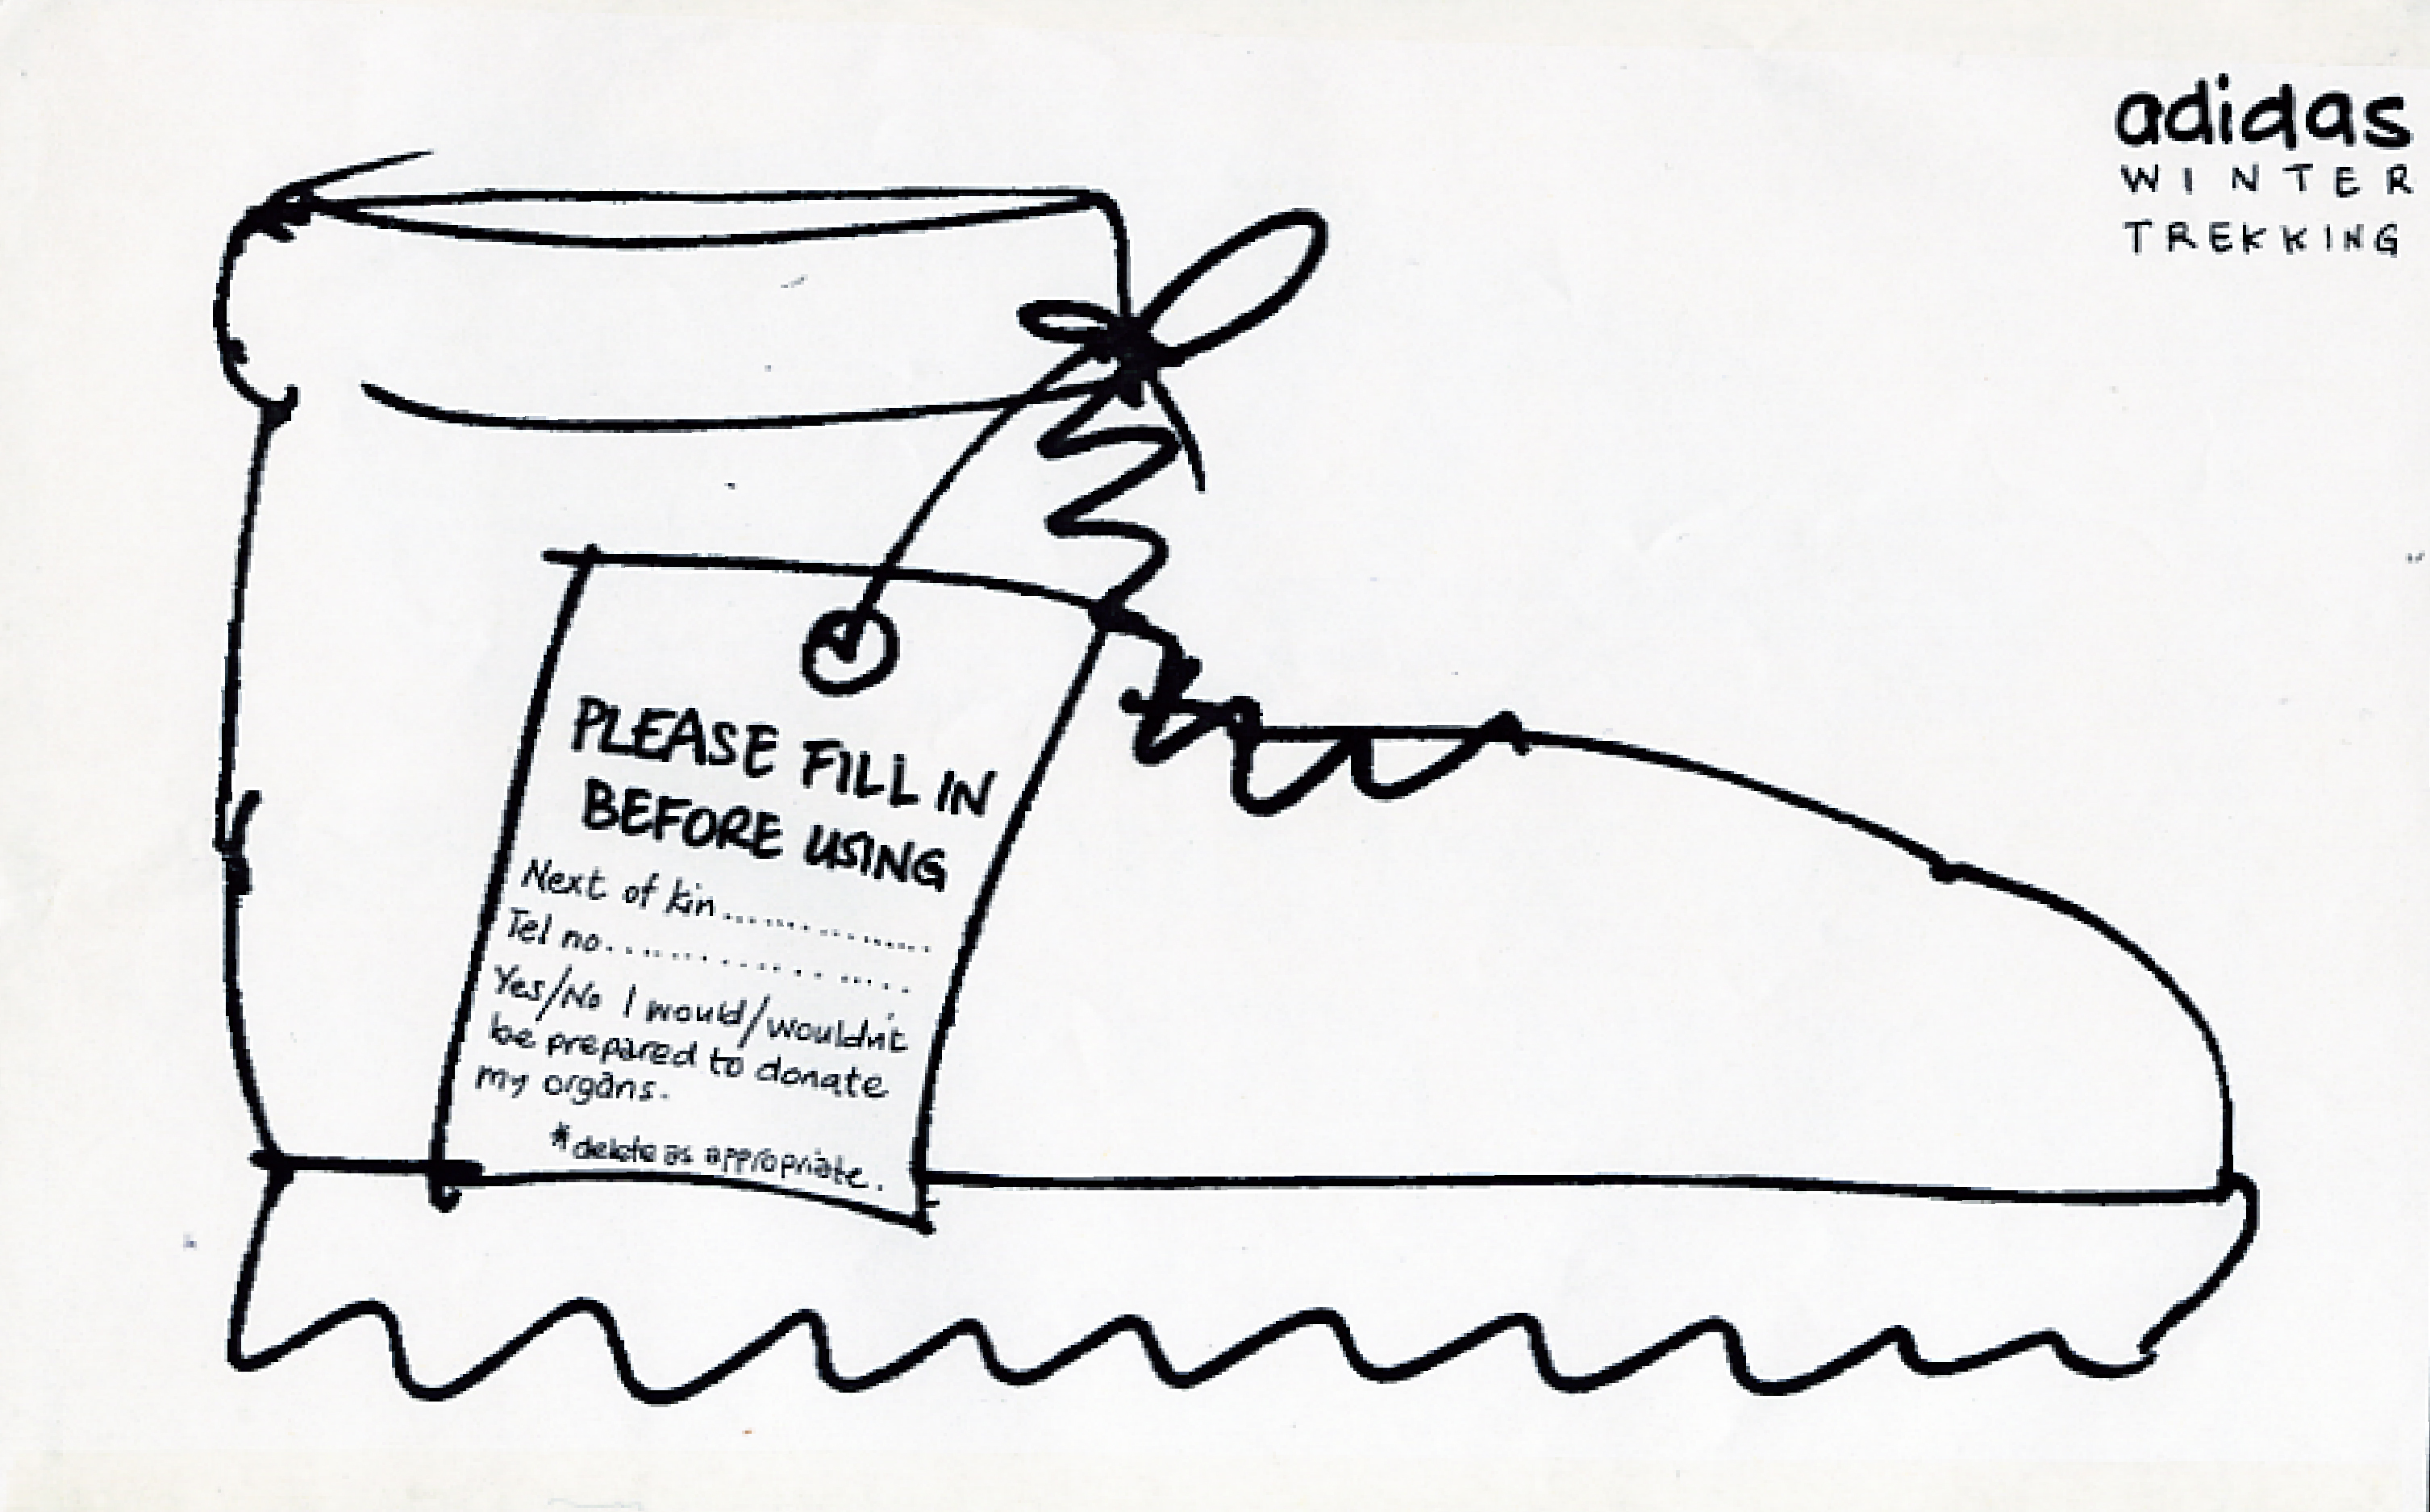 Adidas, Boot, 'Fill In Before' Roughs013-01